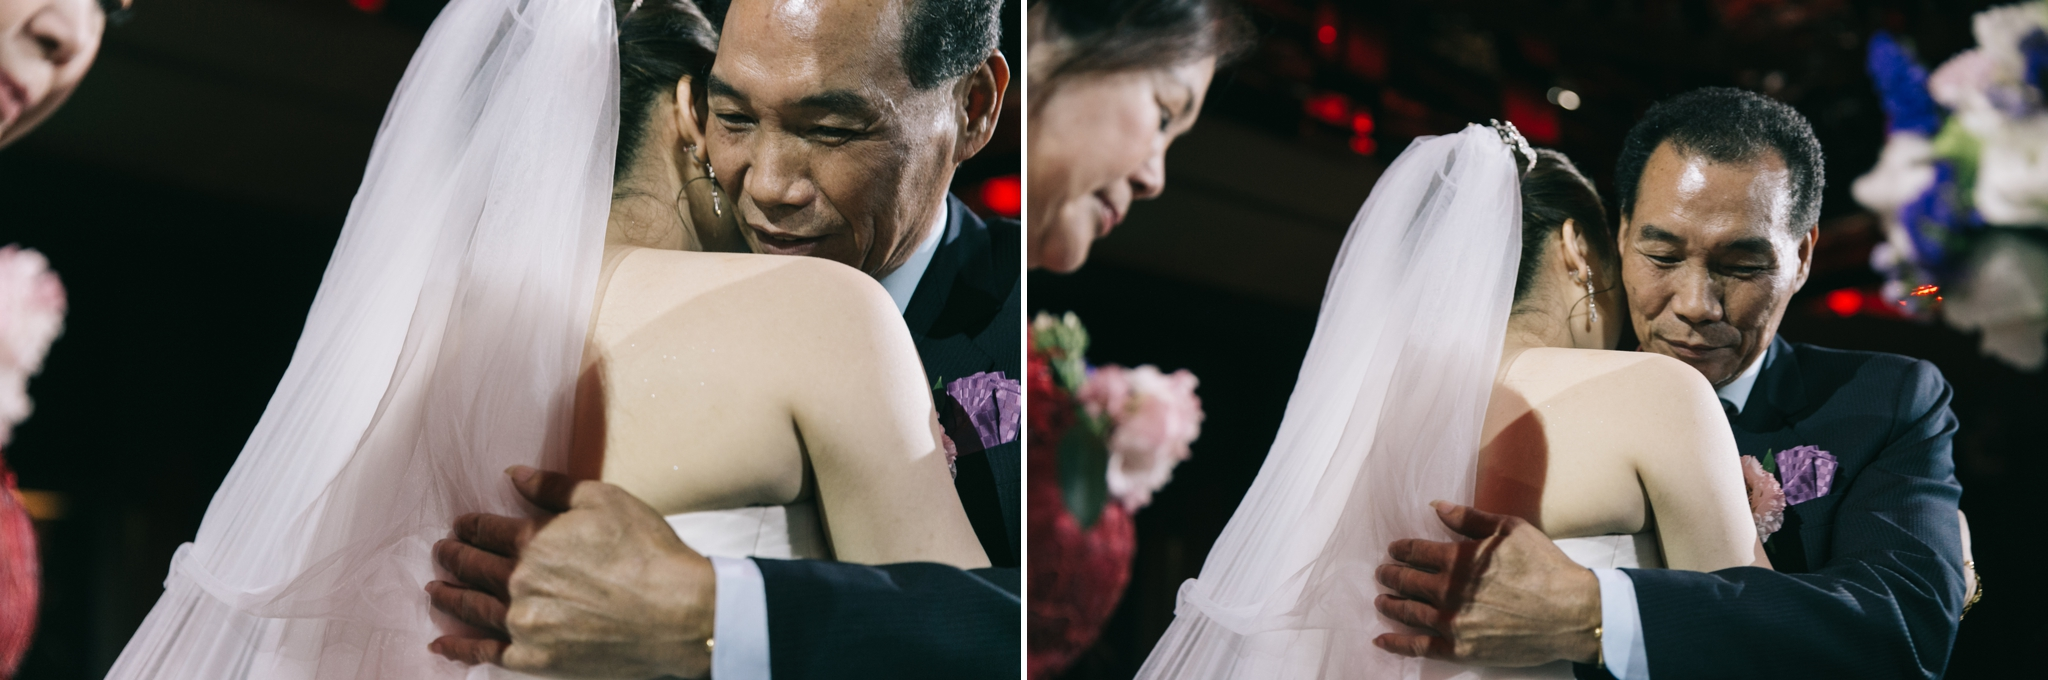 Keddy+Richard-wedding-新莊頤品飯店-181.jpg